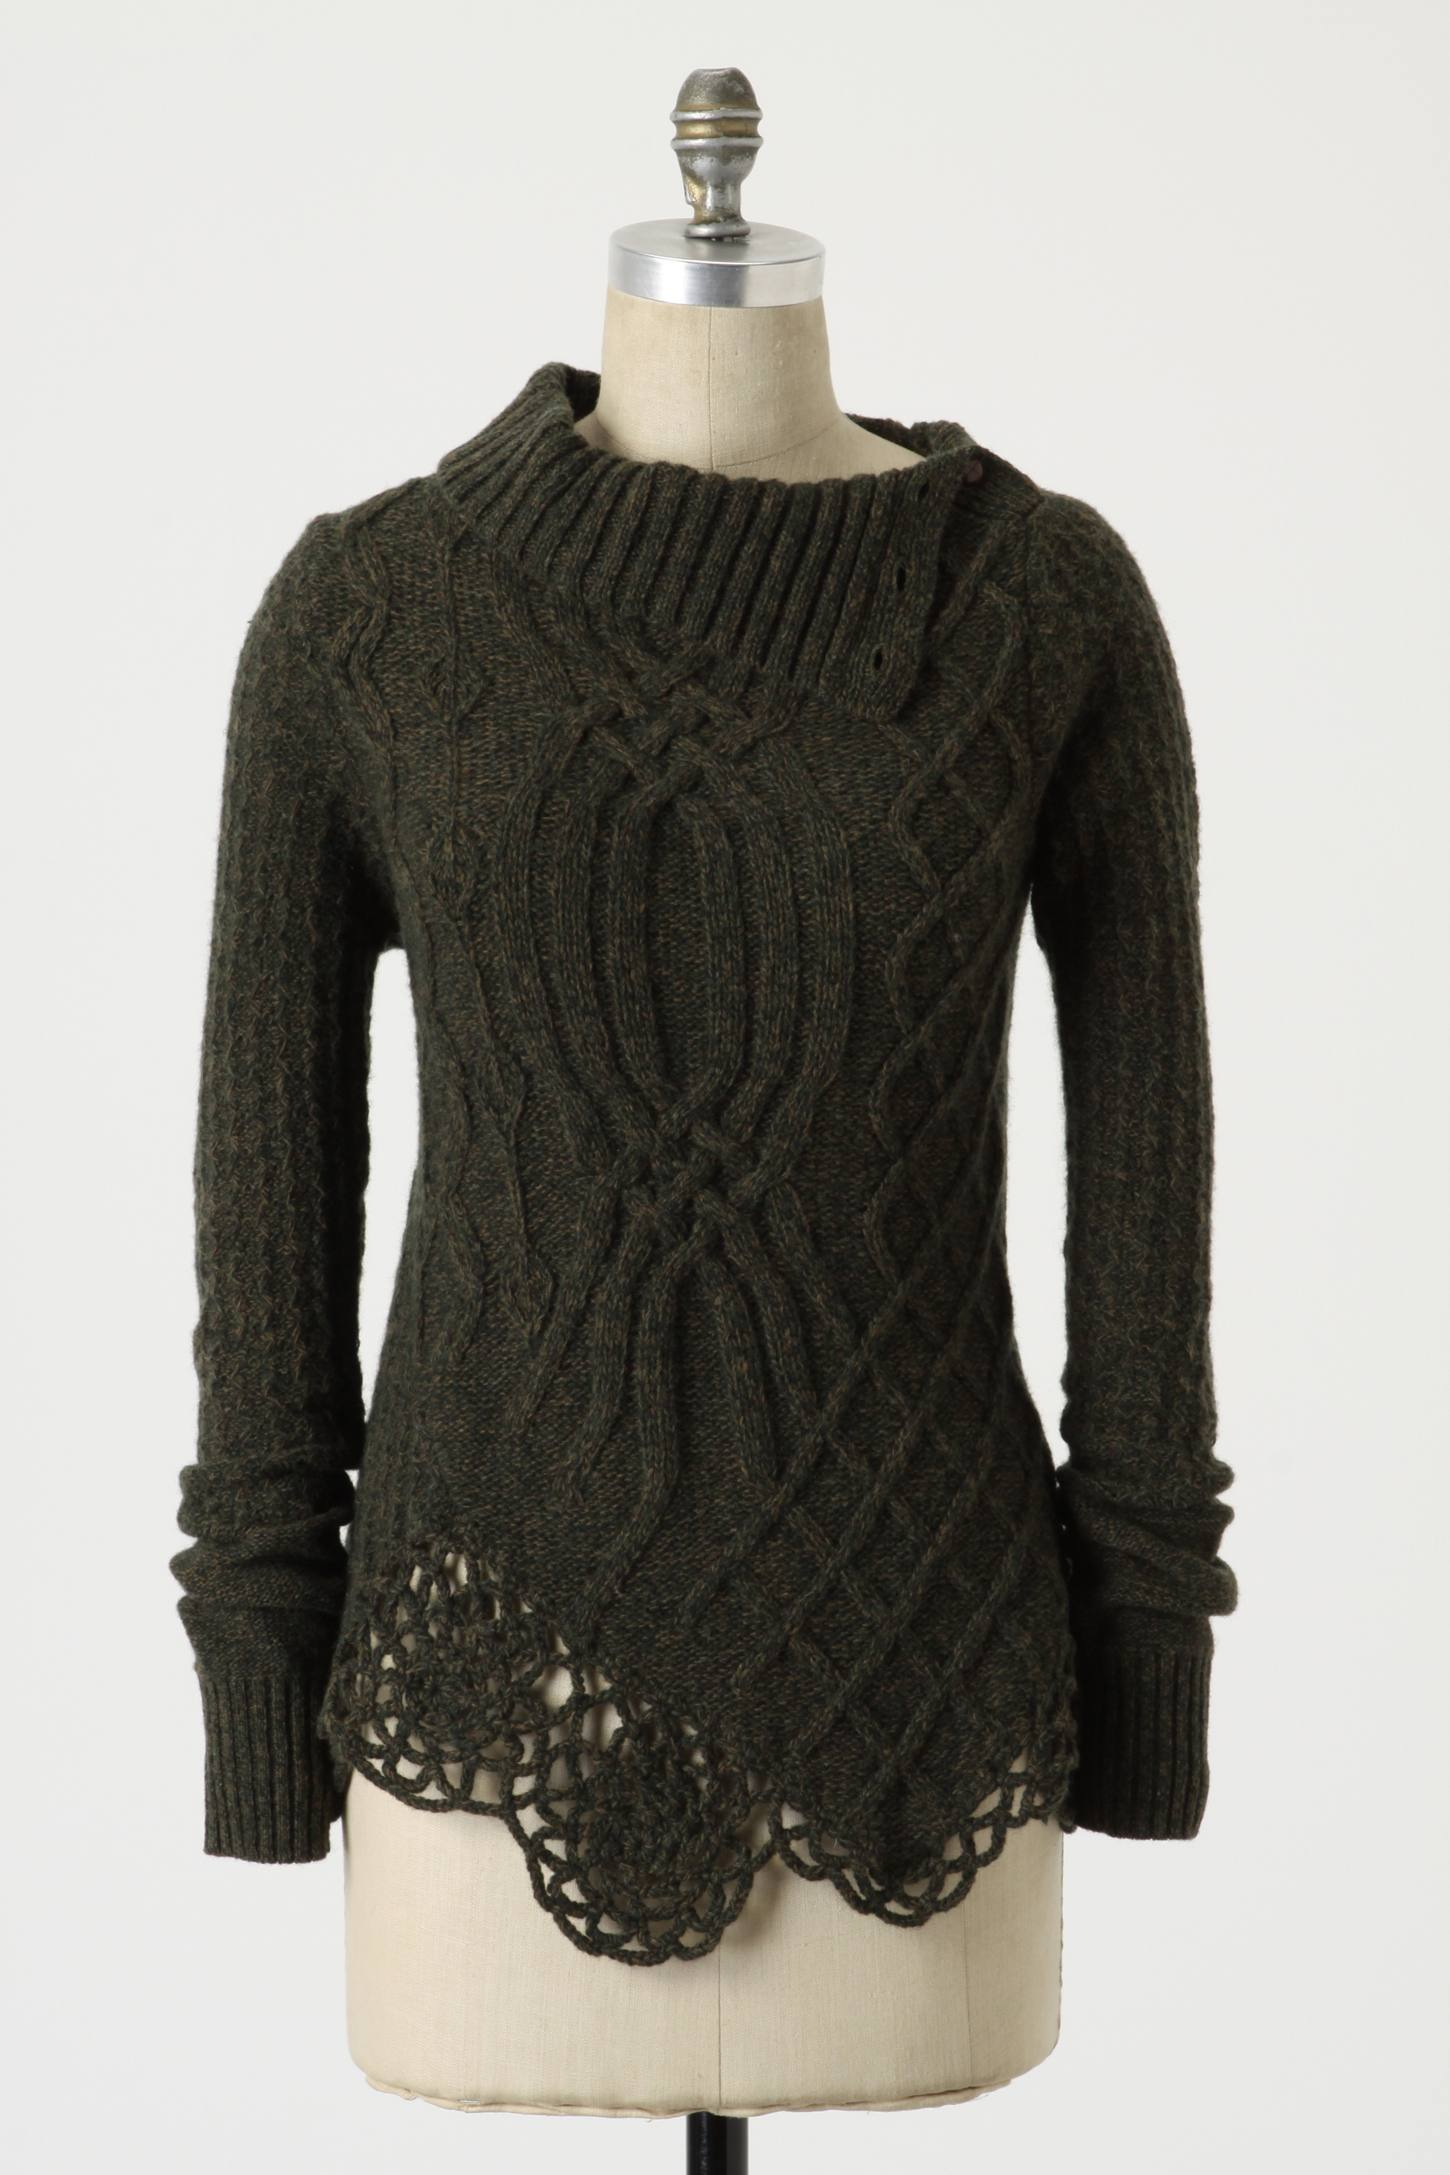 Cabled Pathways Pullover